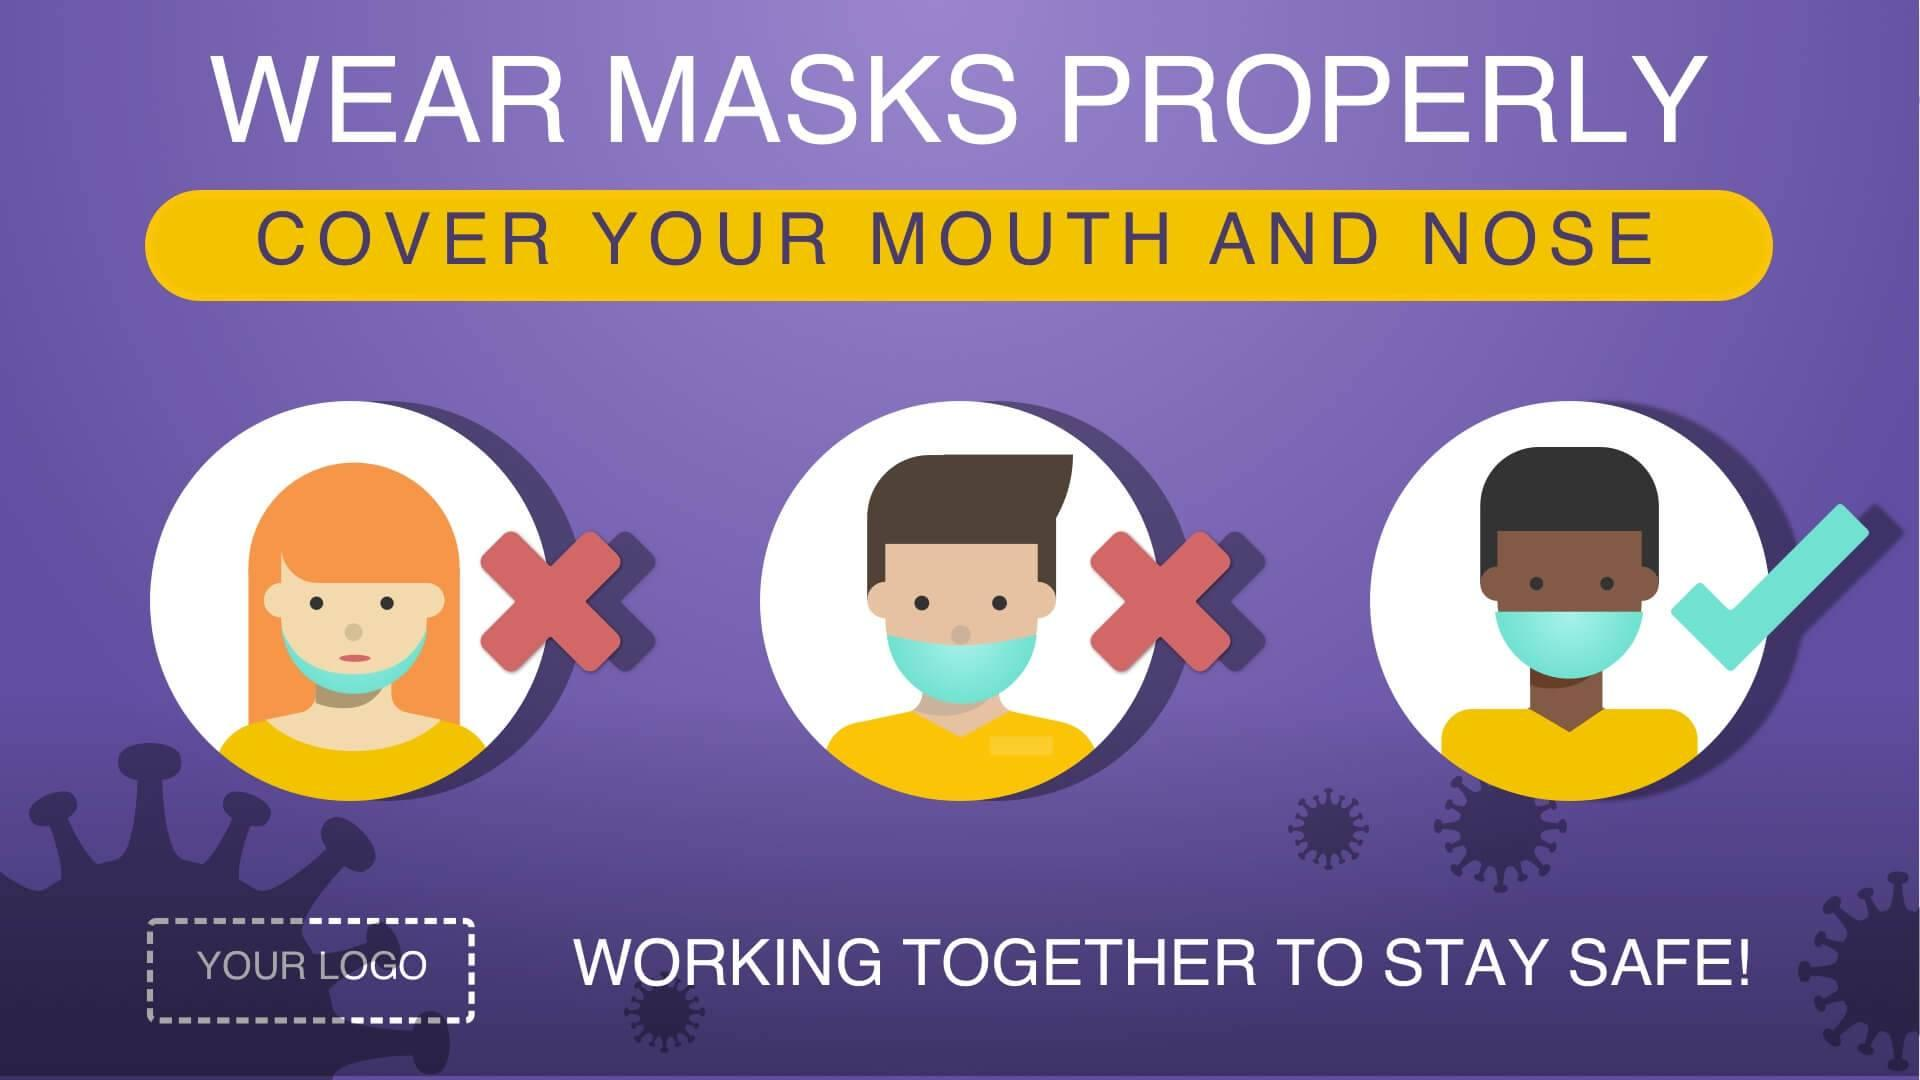 Campaign How To Wear Masks Properly Digital Signage Template